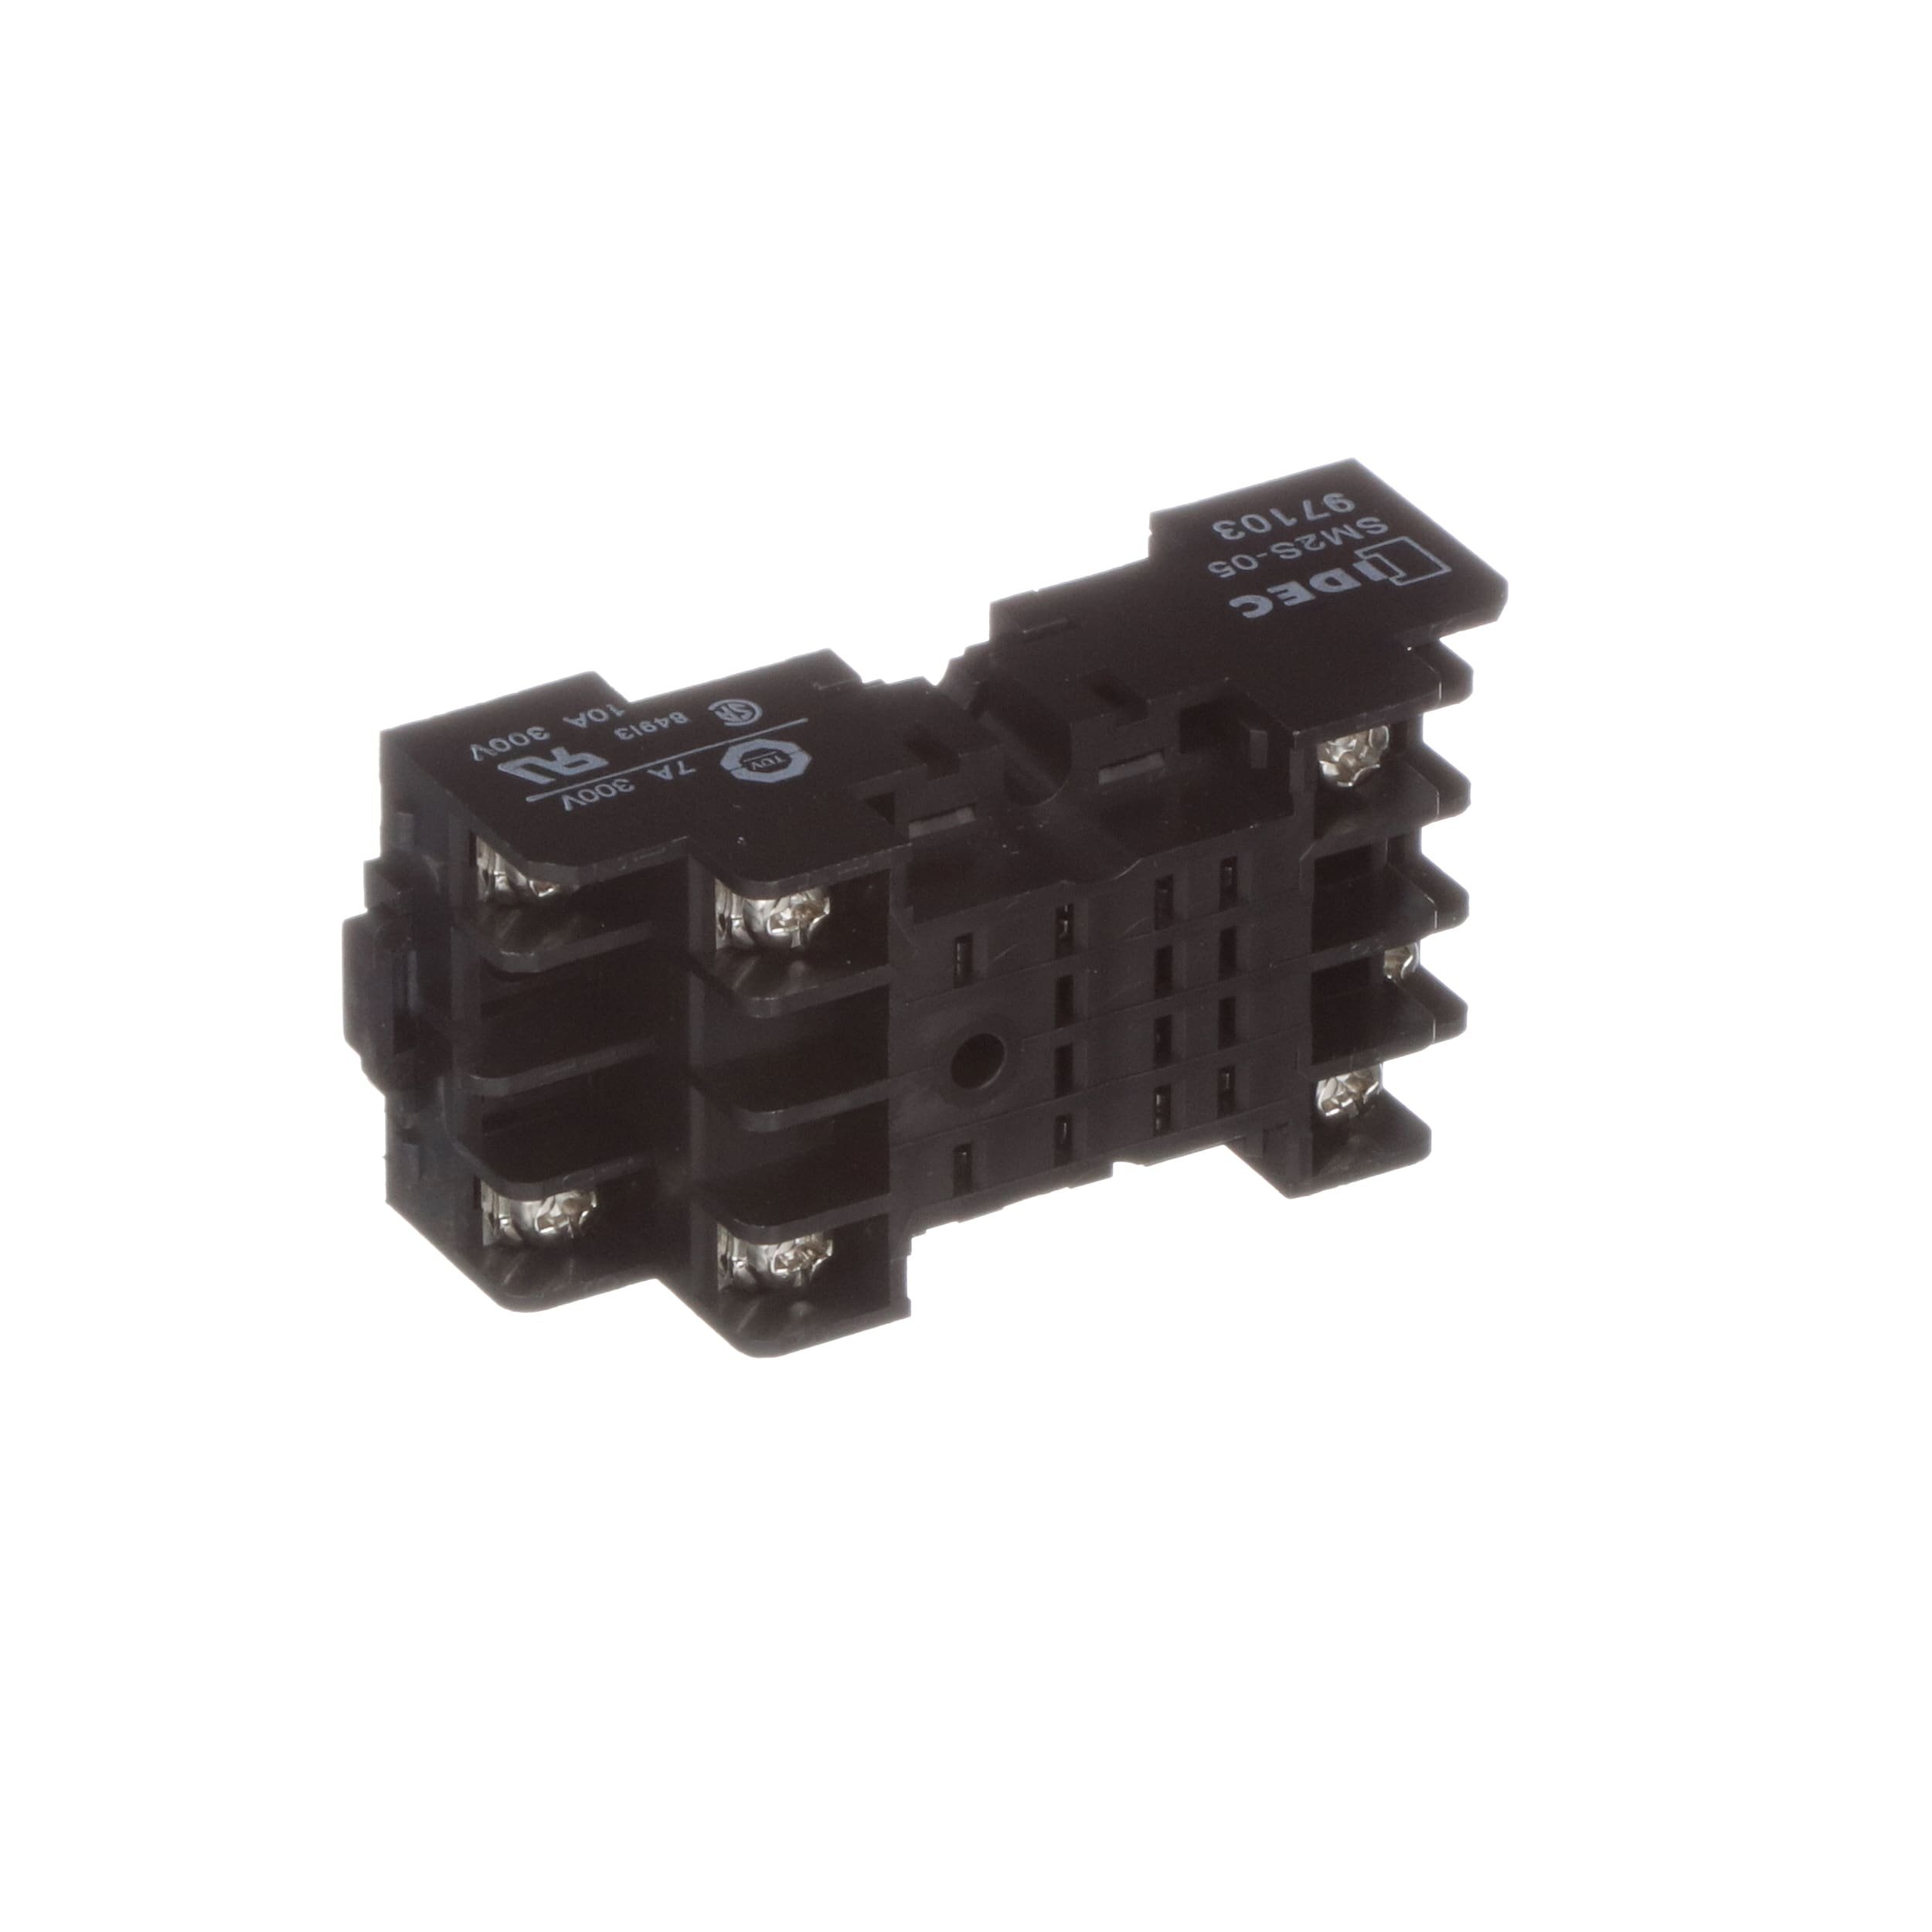 SM2S-05 Idec Pin Relay Wiring Diagram on idec relay base, idec relay schematic, idec spdt relay, idec relay 24v, idec safety relay, idec smart relay, idec solid state relays,